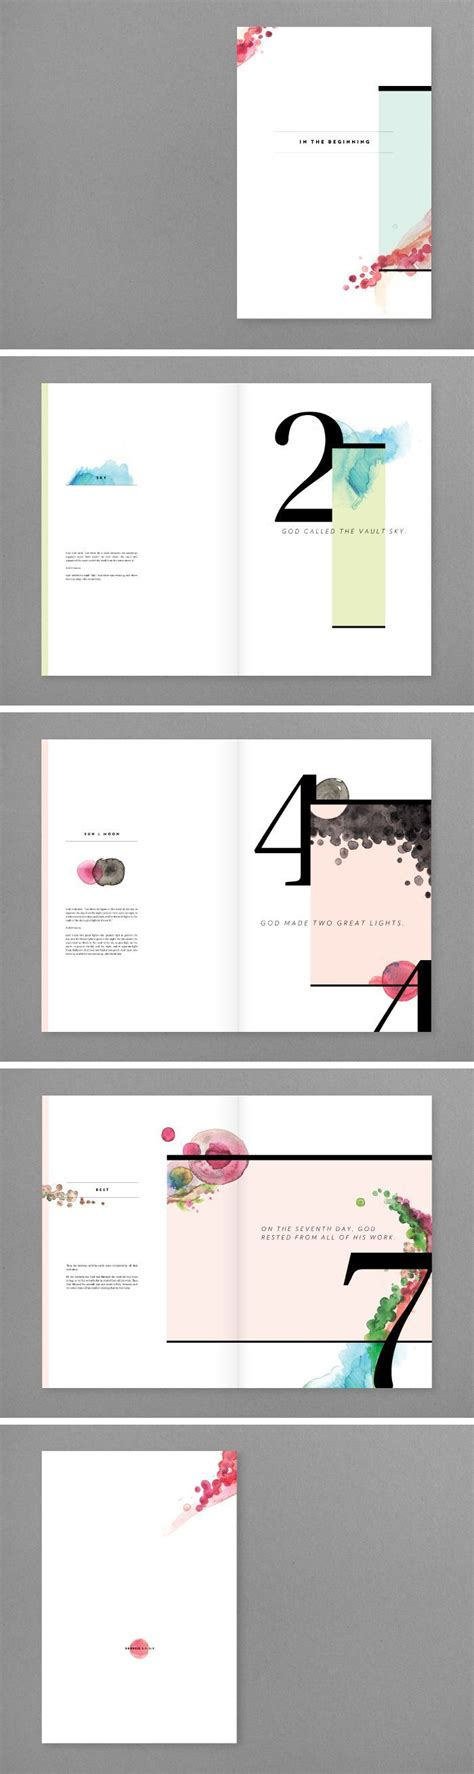 page layout design pinterest combination of water color and typography editorial